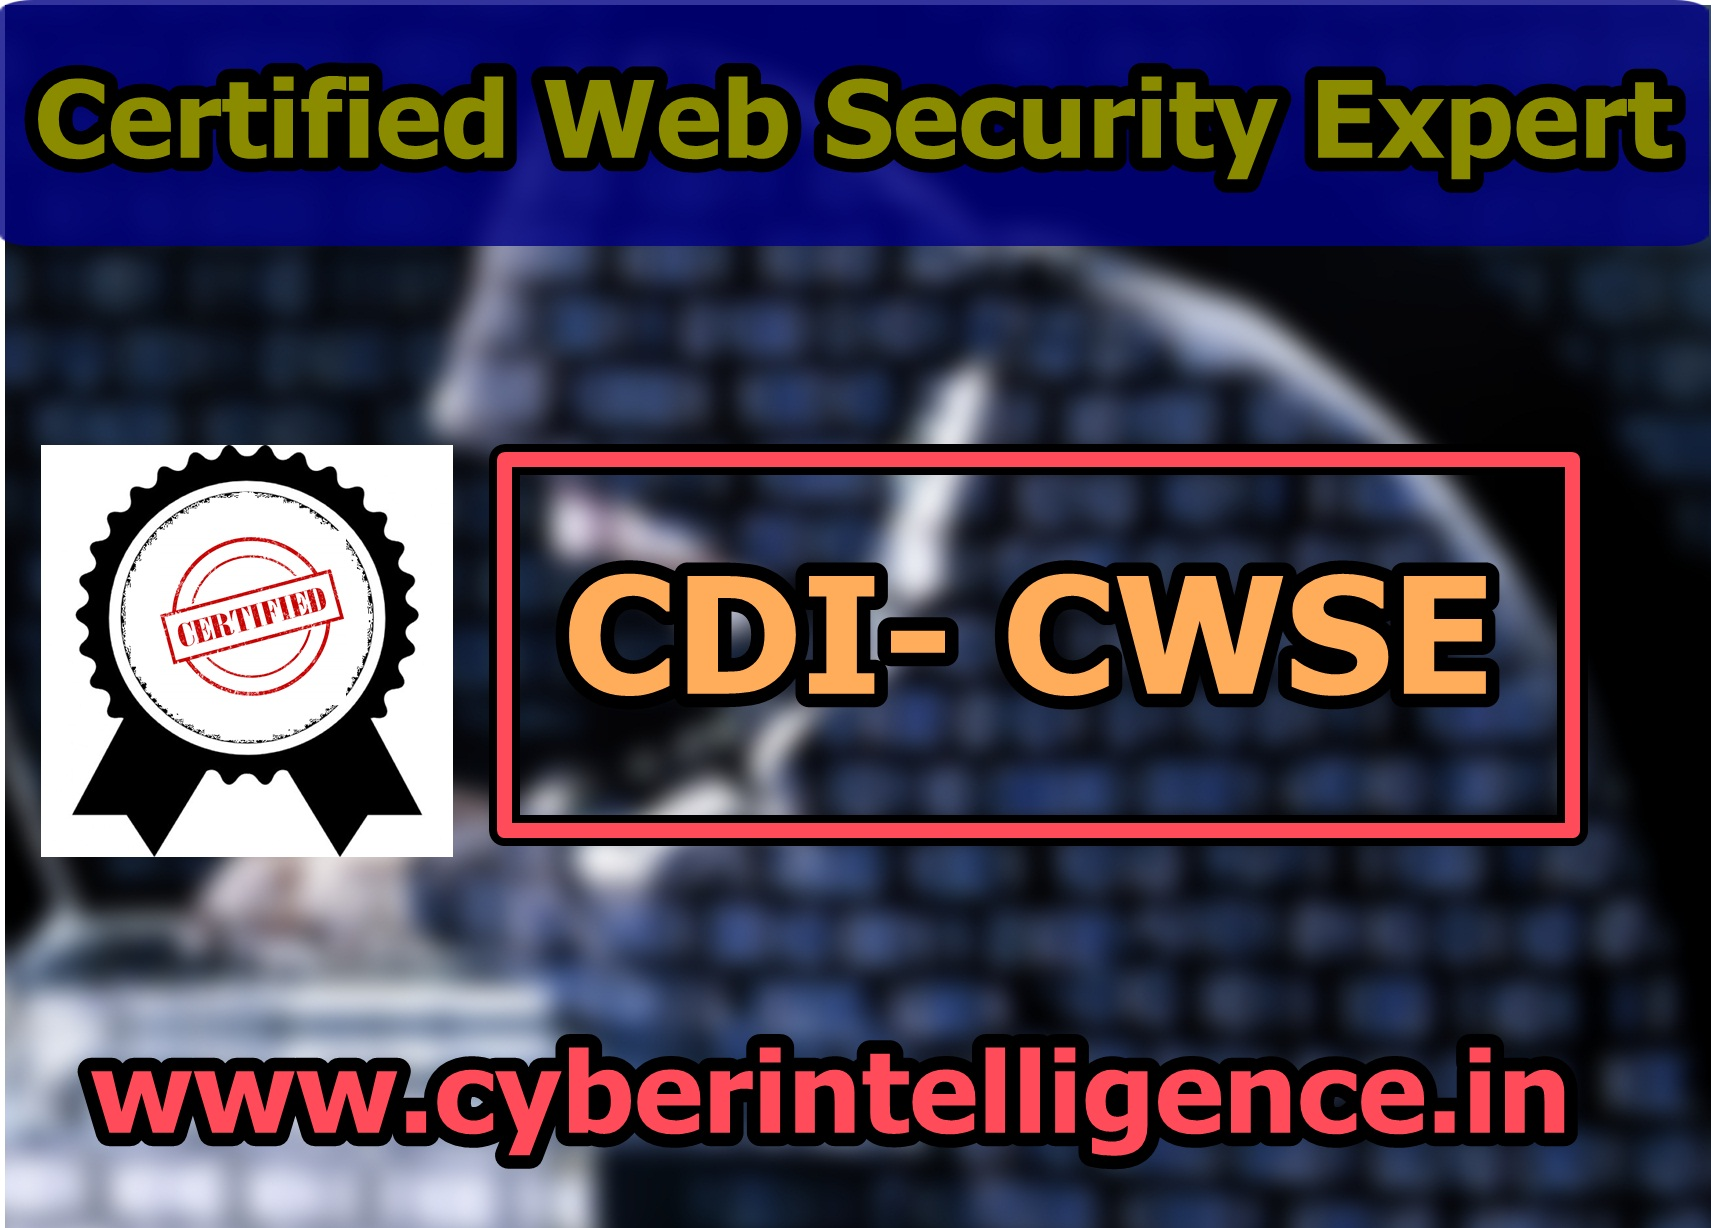 Online Training Cyber Security Cyber Defence Intelligence Chandigarh